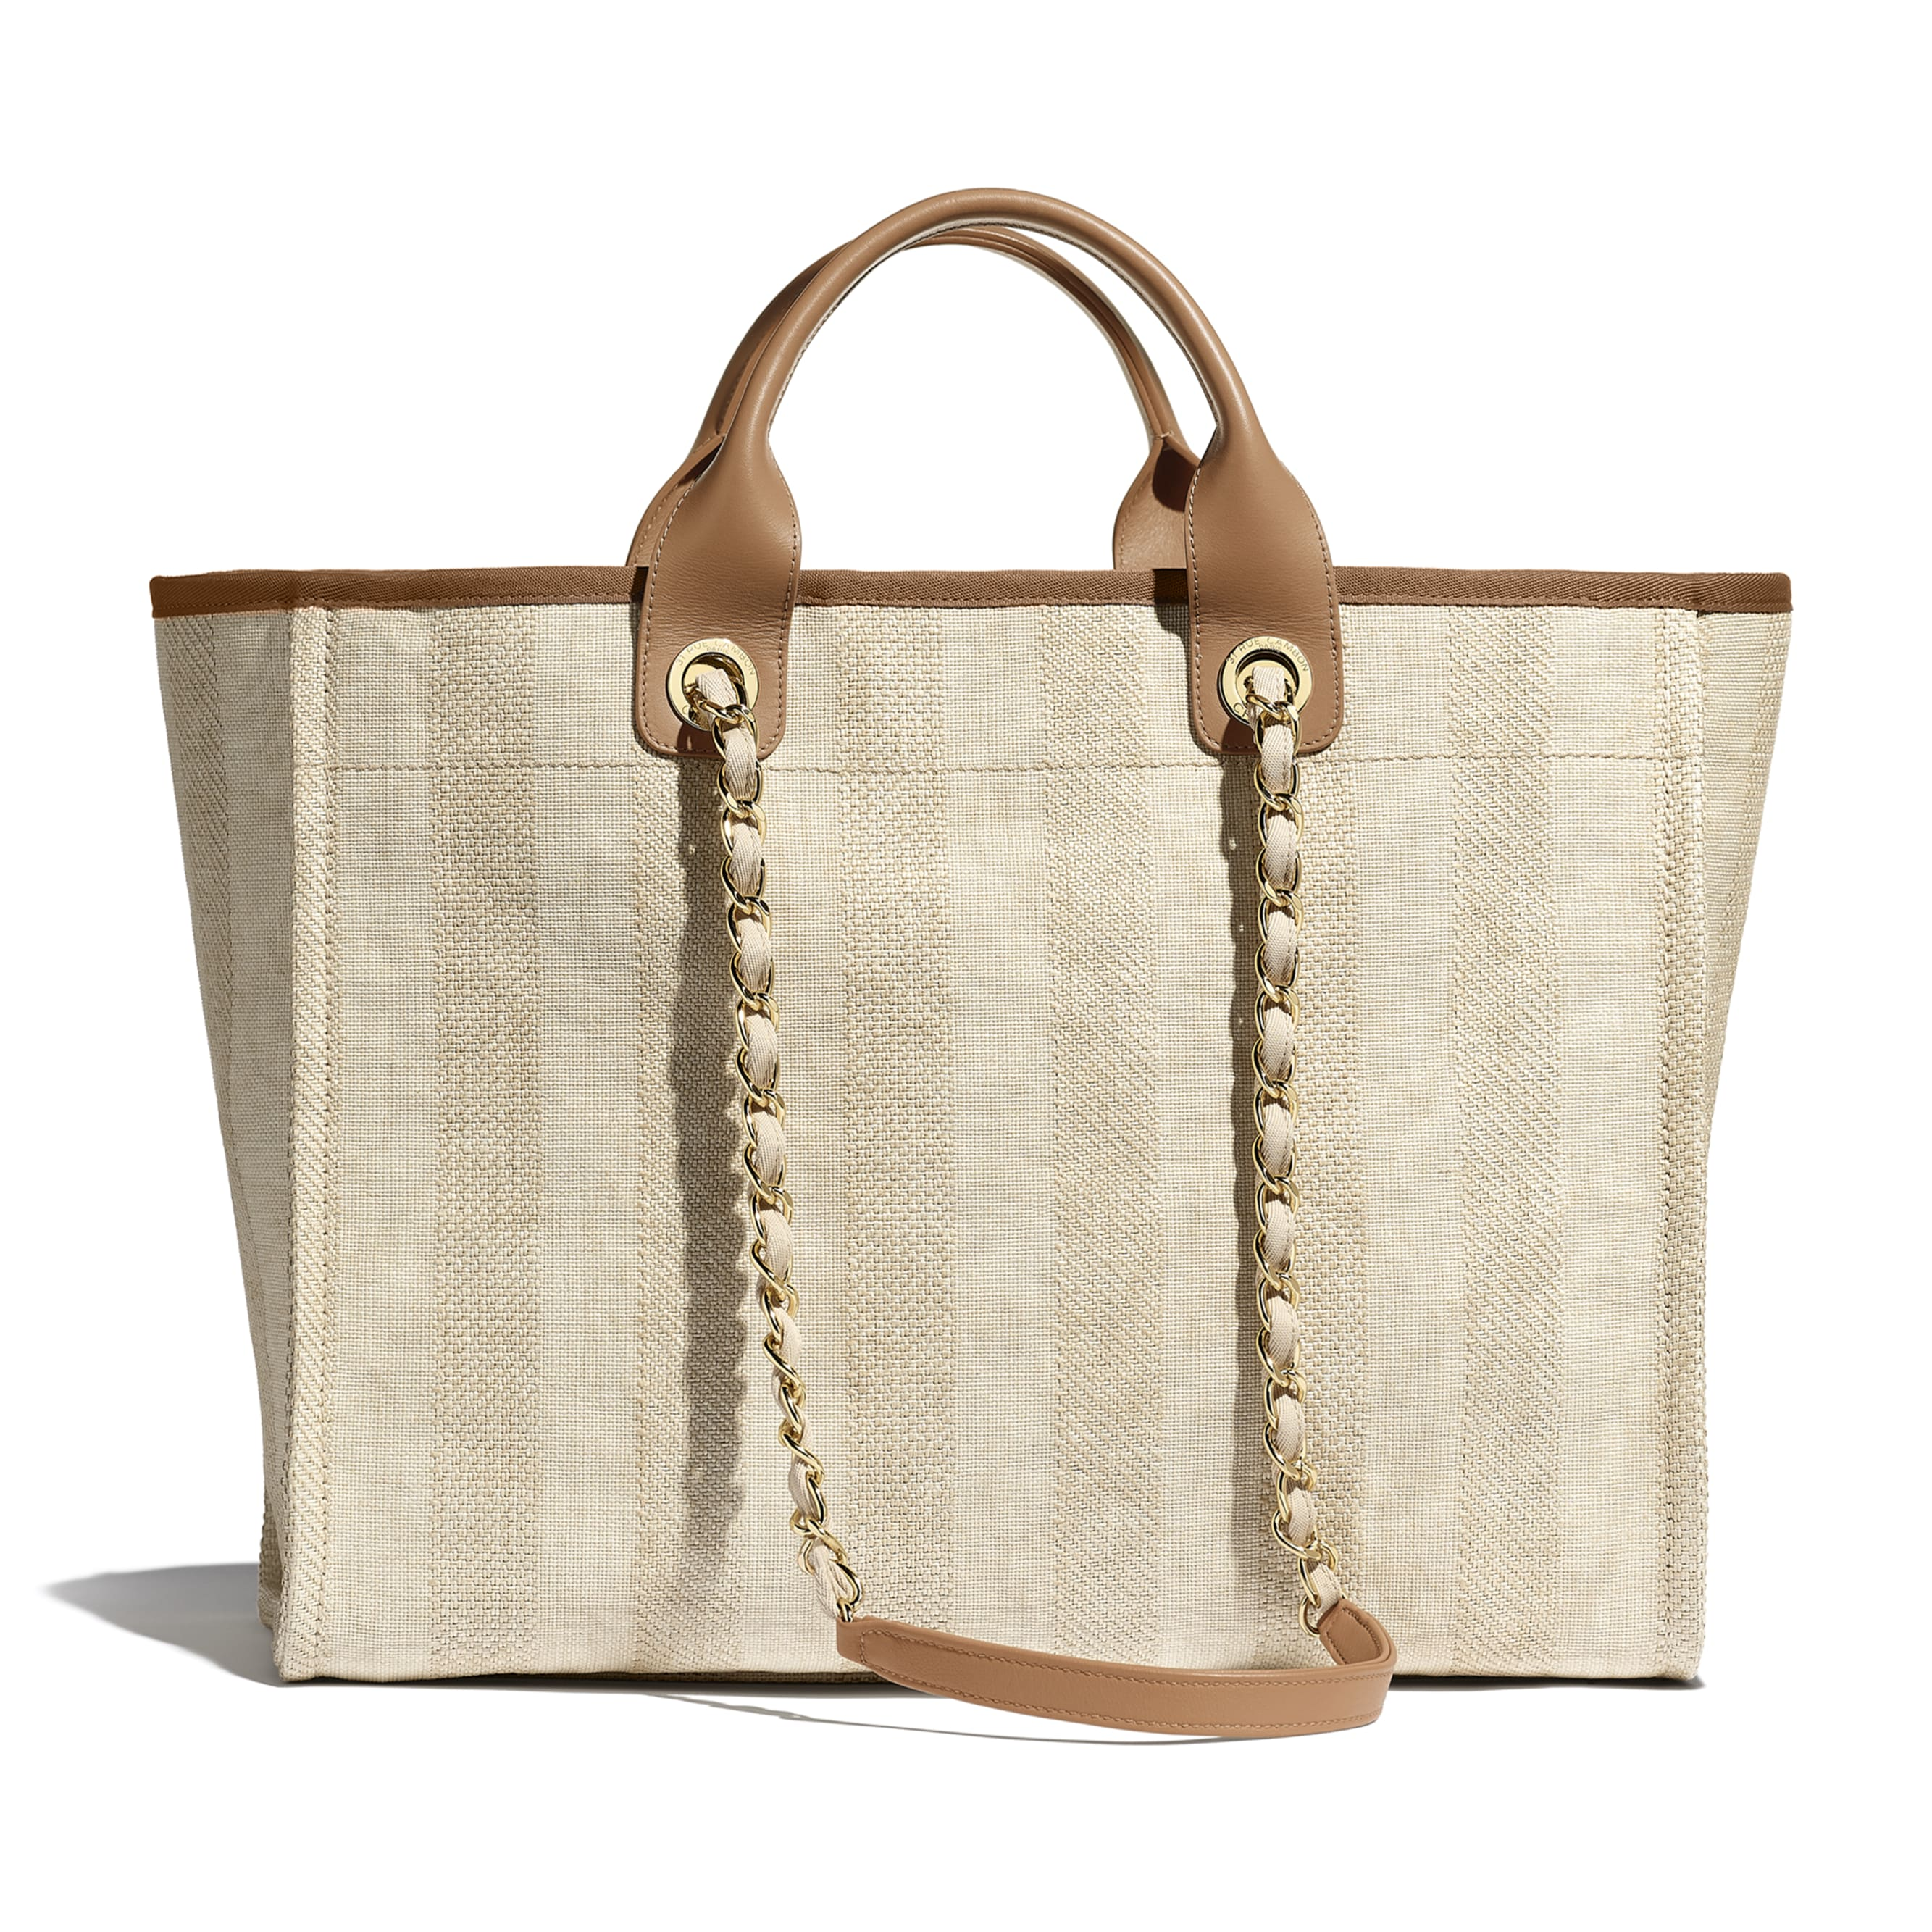 Large Tote - Beige - Mixed Fibres, Calfskin & Gold-Tone Metal - CHANEL - Alternative view - see standard sized version